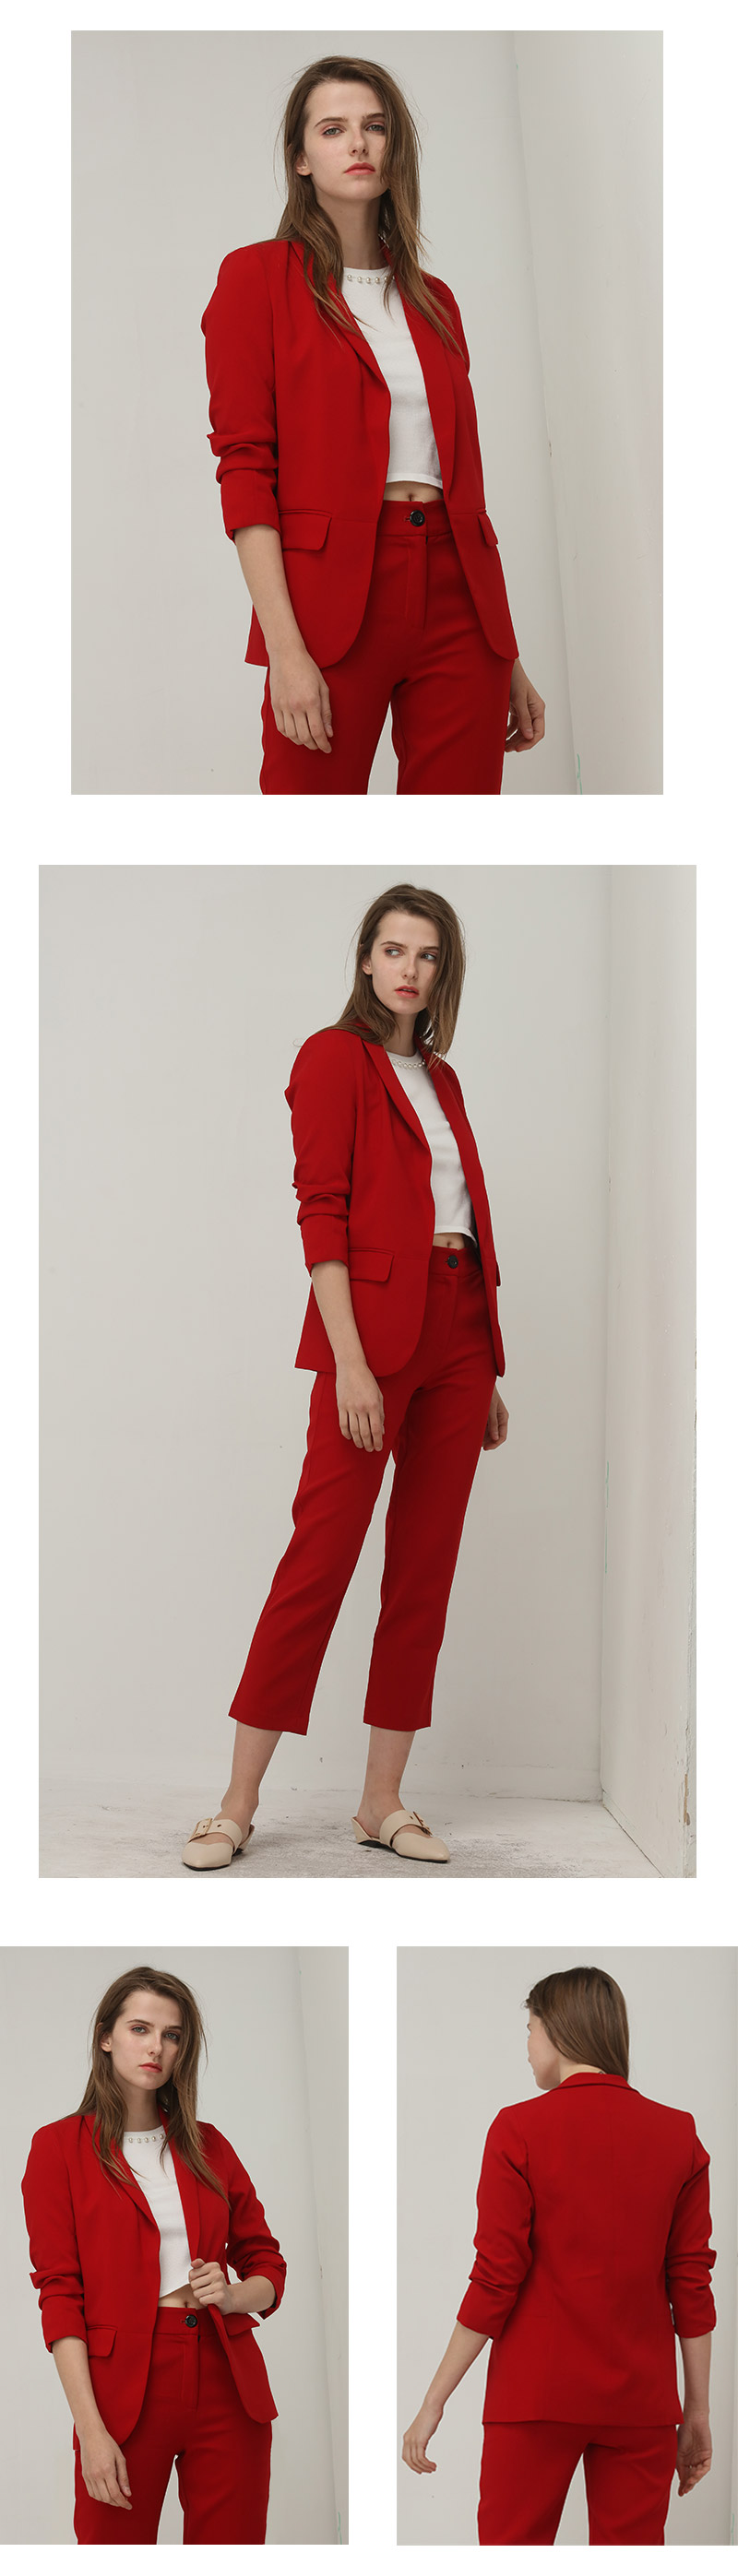 Elegant Red Puff Three Quarter Sleeve Blazer 1